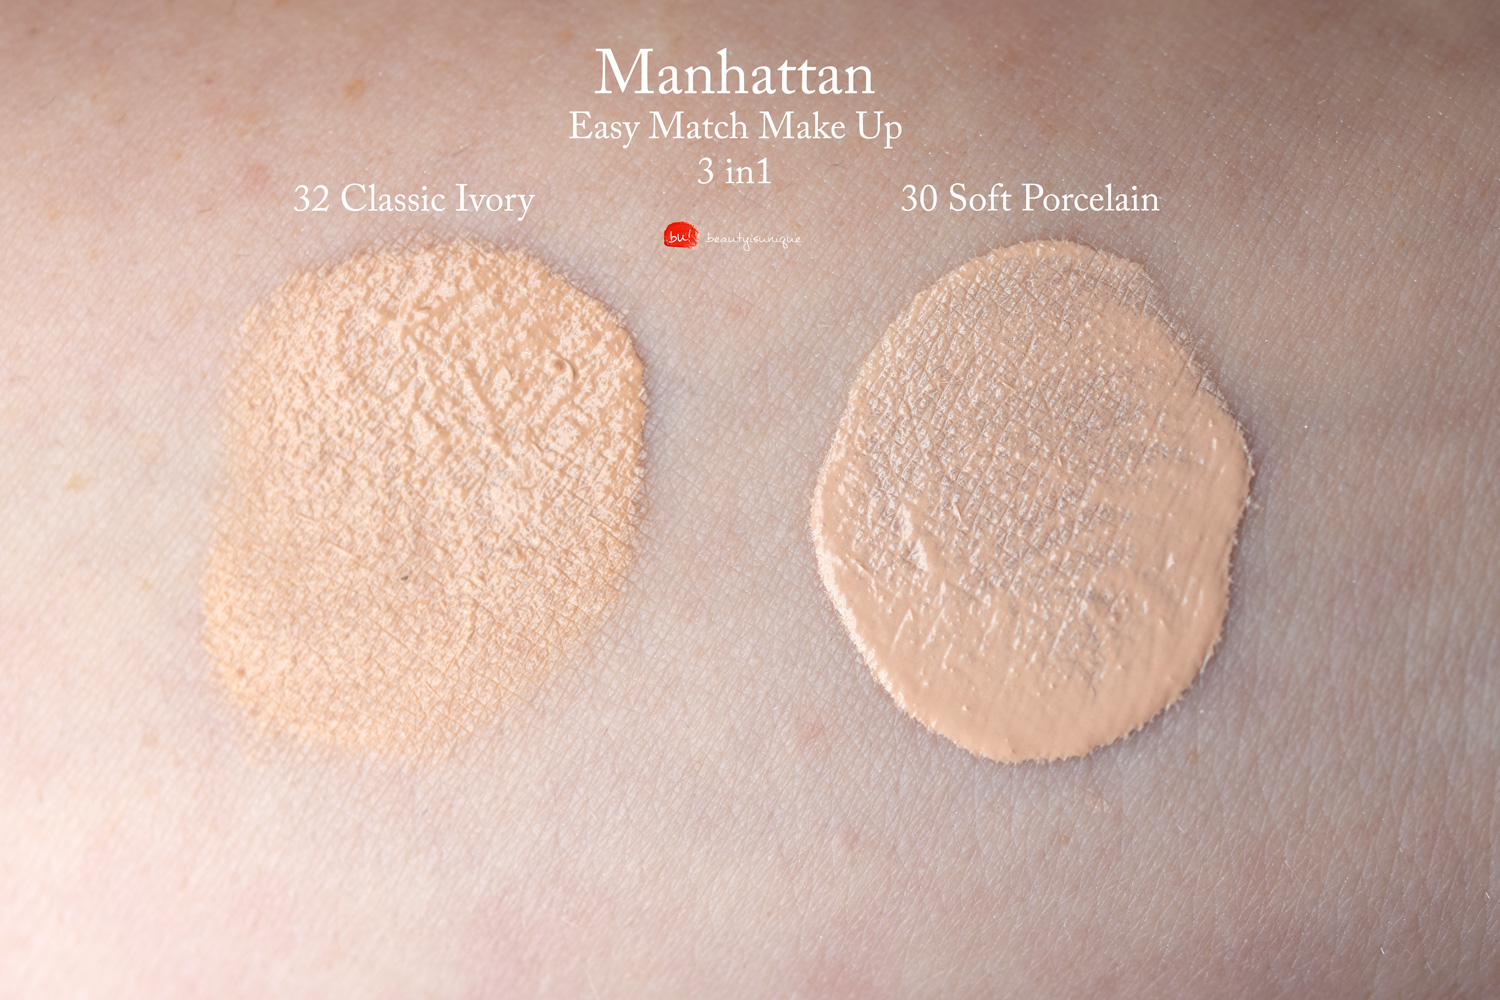 Manhattan-easy-match-make-up